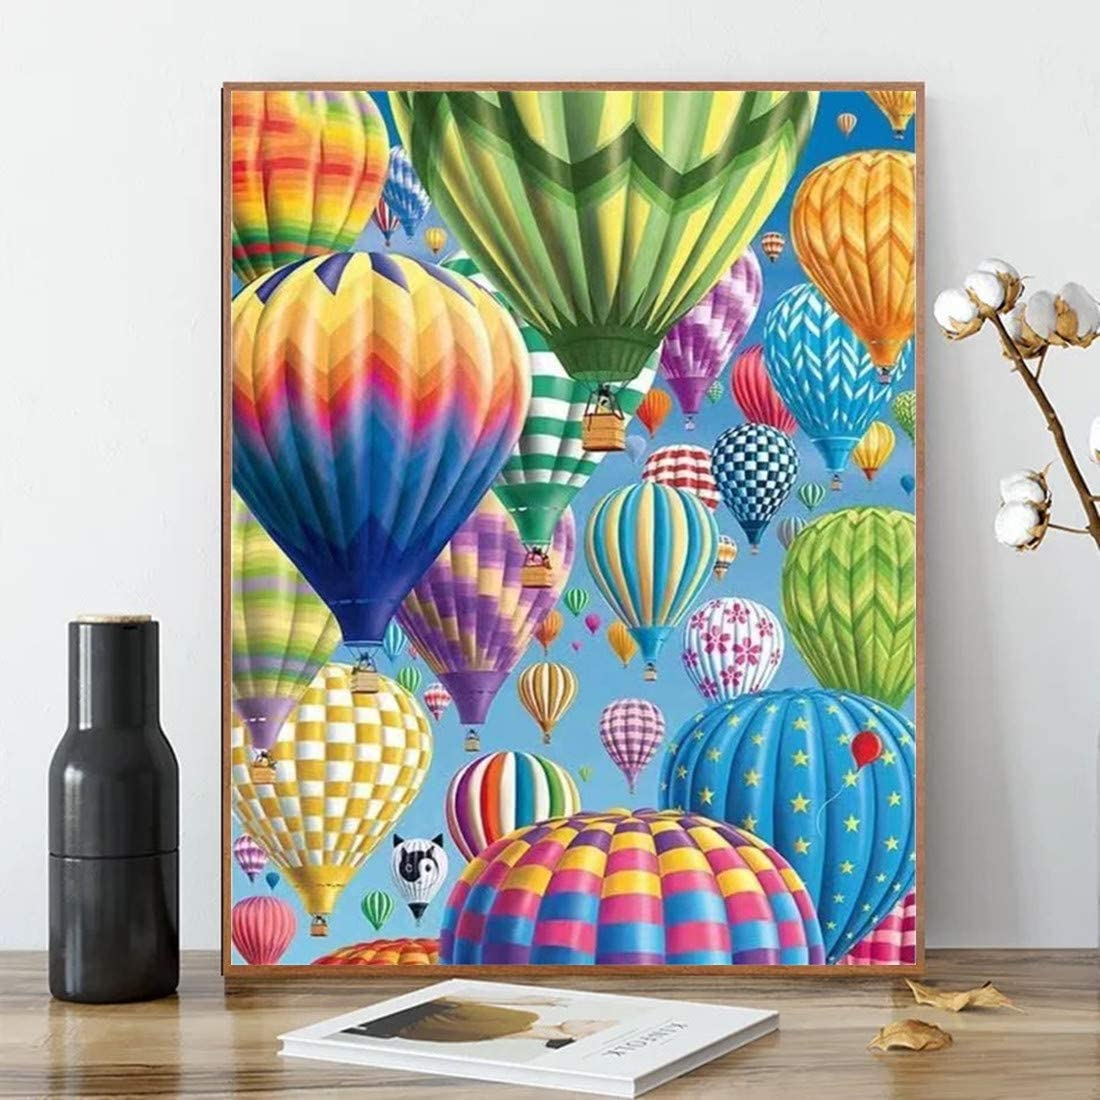 Karyees Balloon Paint by Numbers Hot Air Balloon Paint by Numbers Balloon DIY Canvas Painting by Numbers Acrylic Painting Home Decor Balloon Paint by Numbers for Adults Kids Hot Air Balloon 16x20In